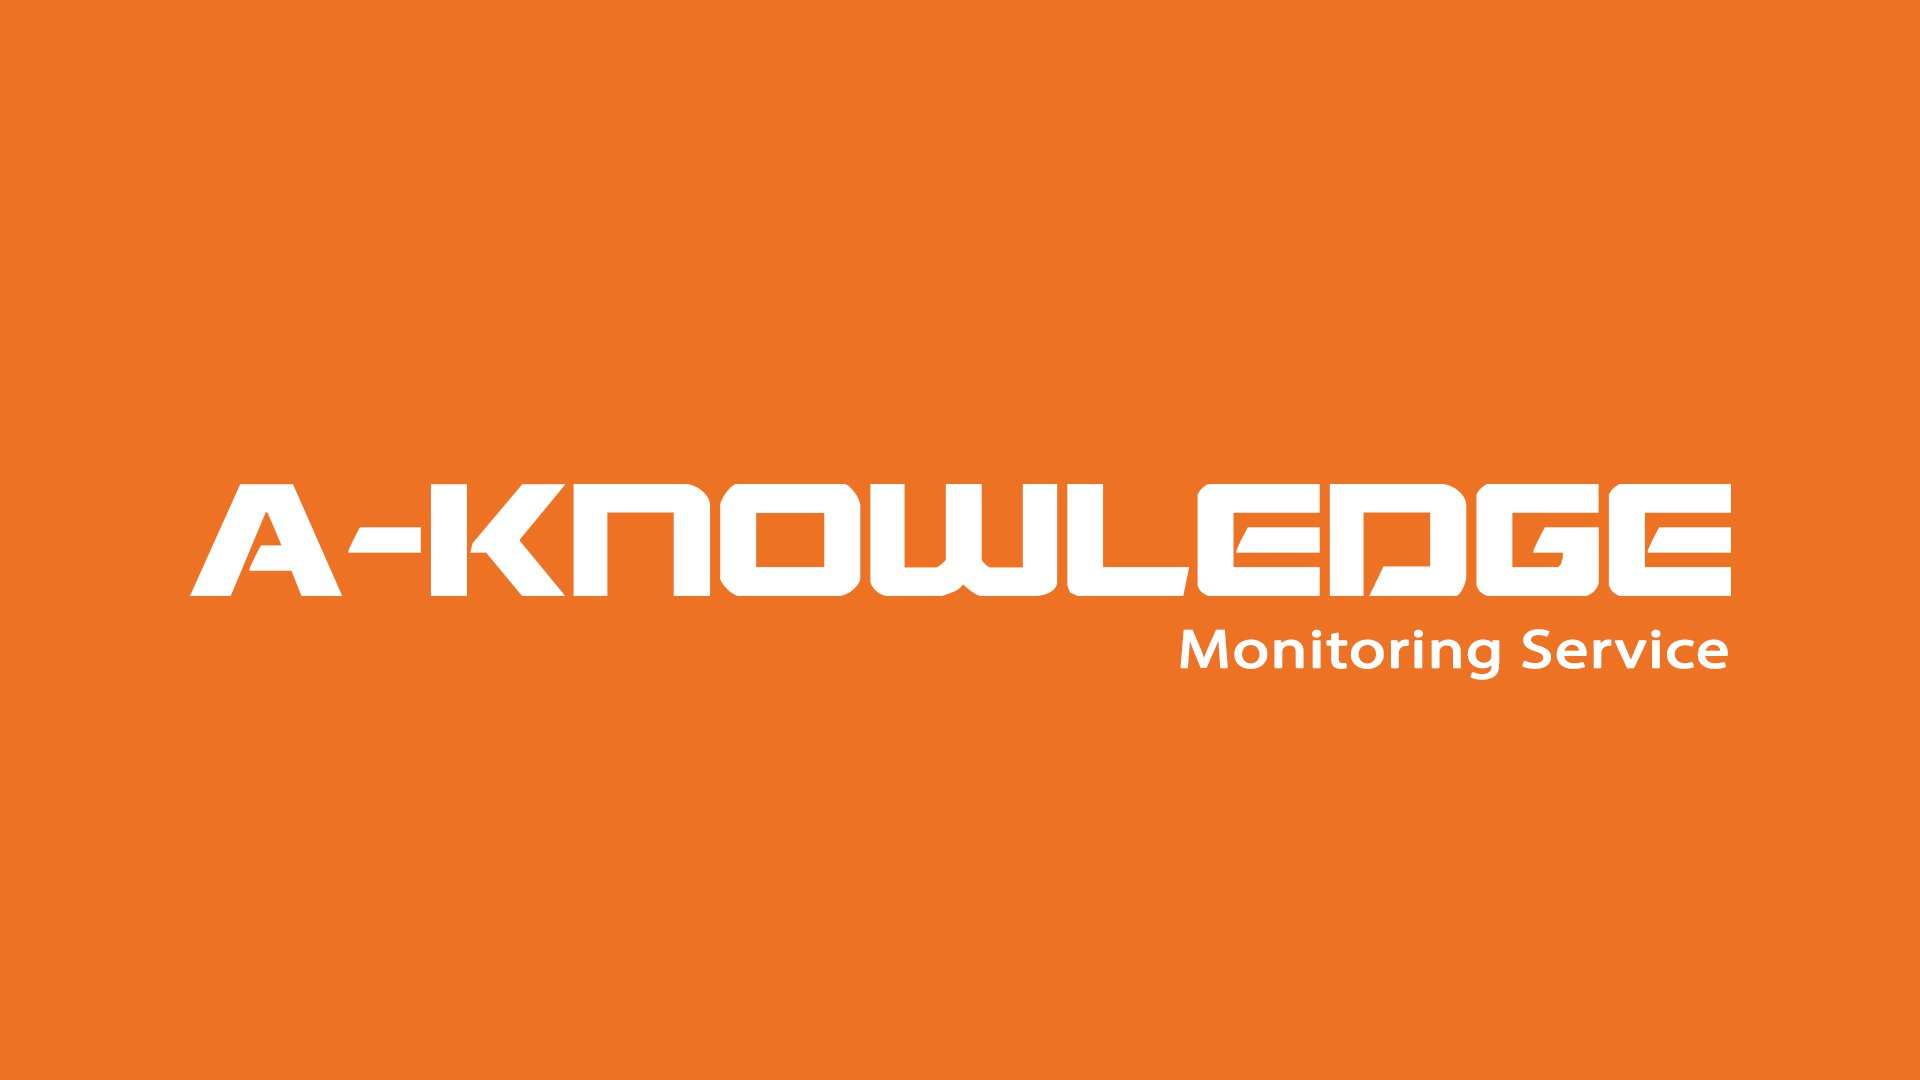 A-knowledge Monitoring Service